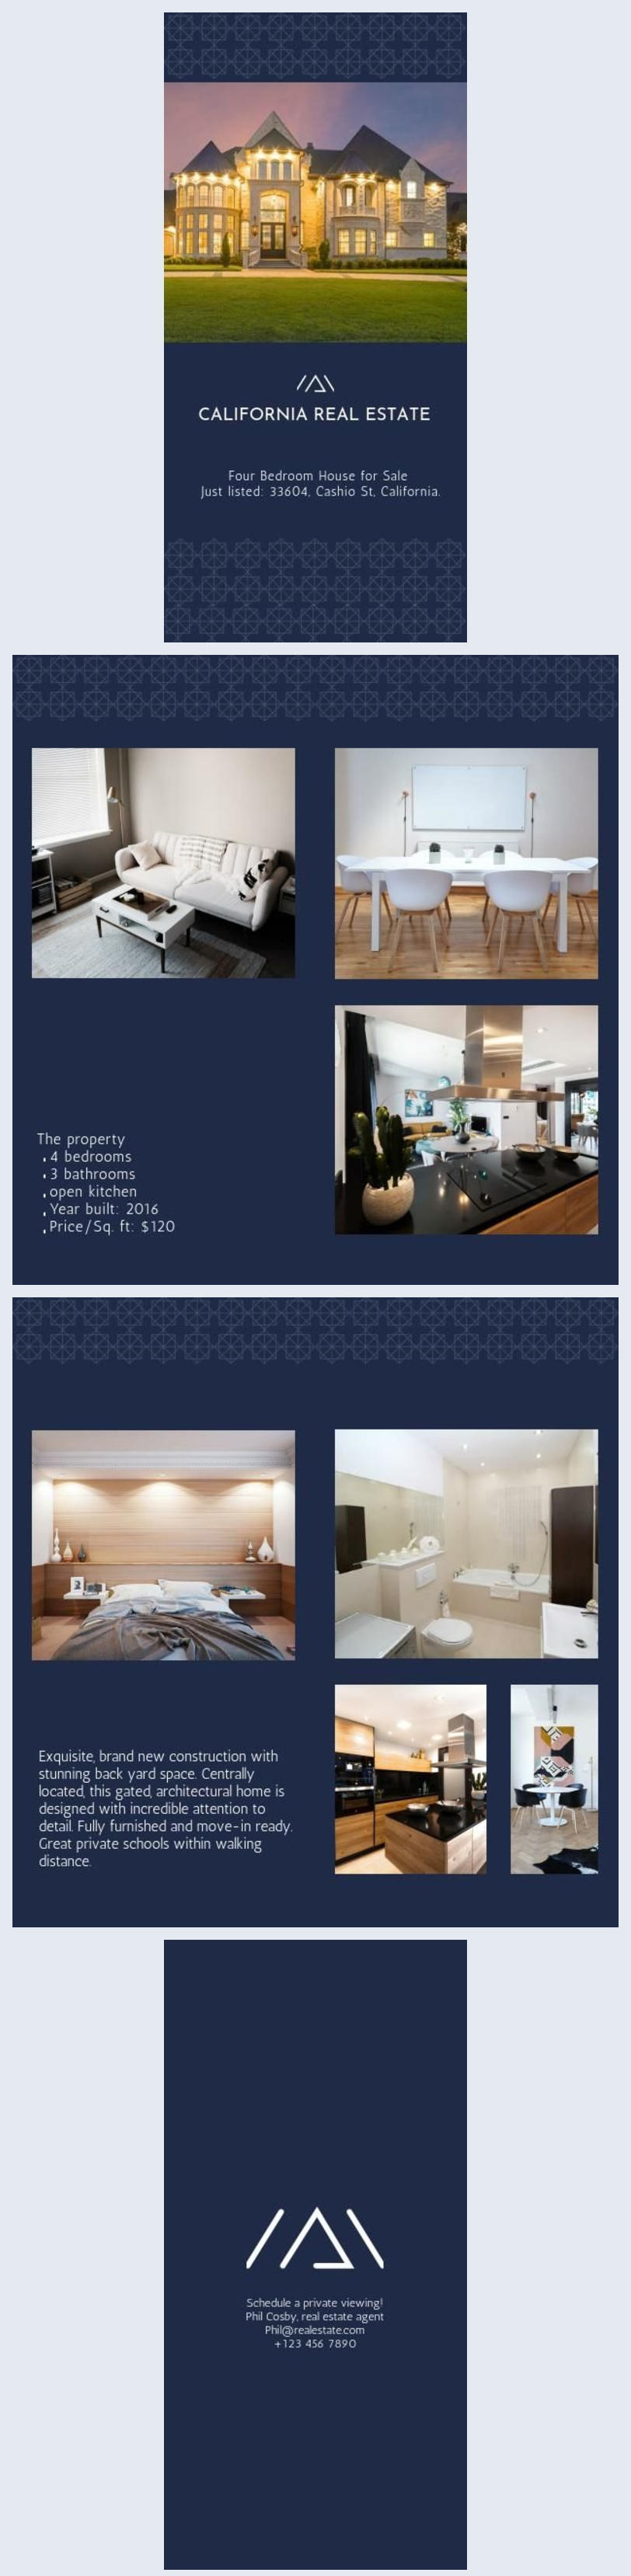 House for Sale - Real Estate Brochure Example